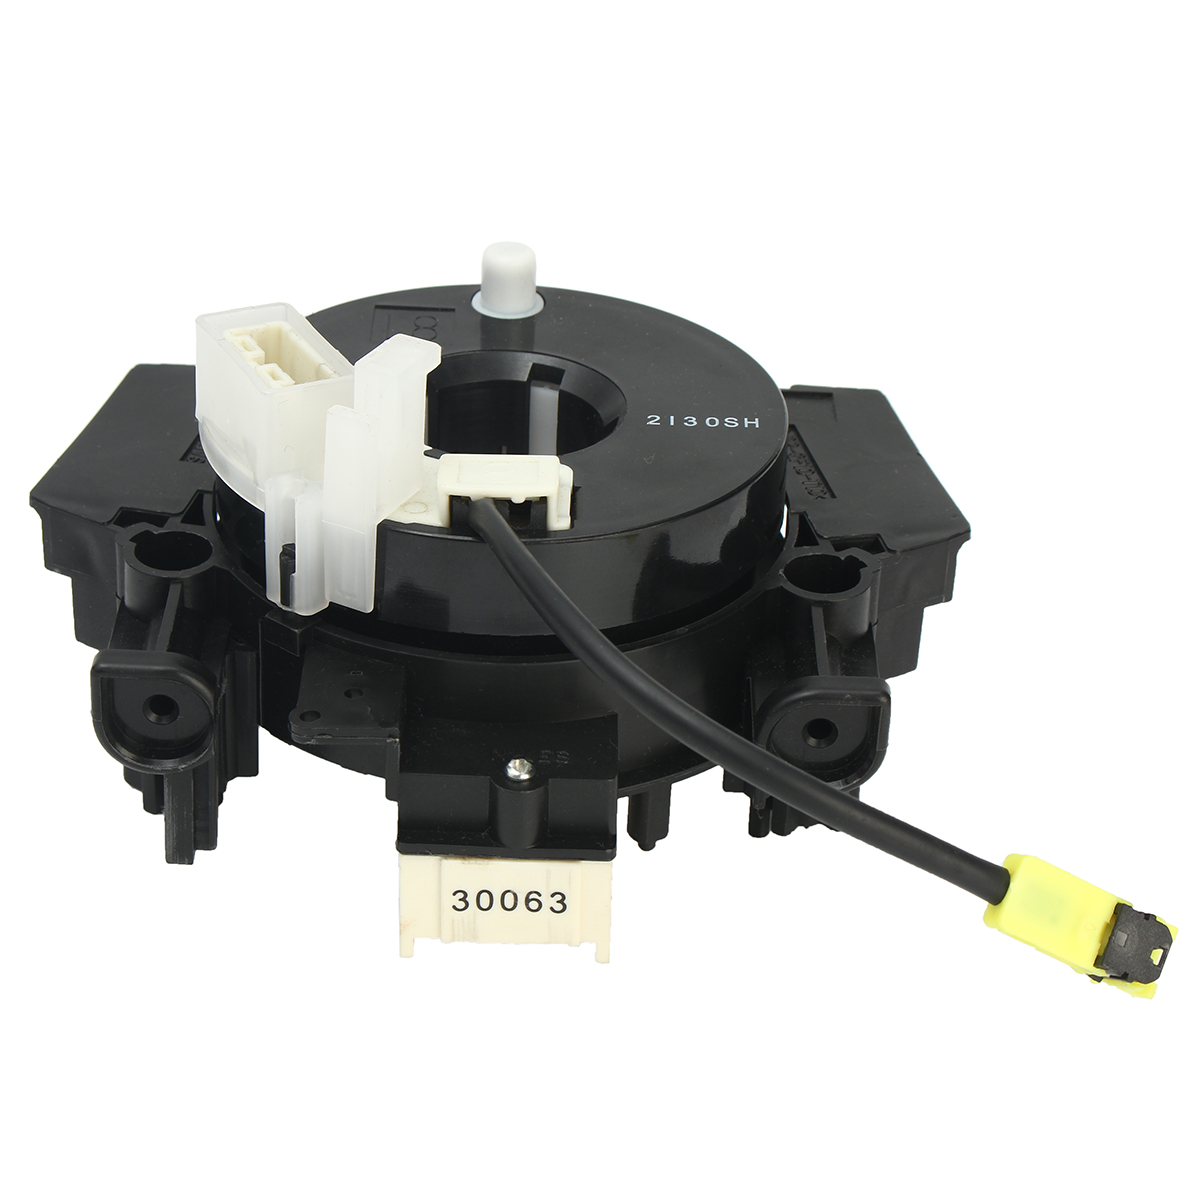 hight resolution of airbag spiral cable clock spring squib ring for nissan pathfinder navara d40